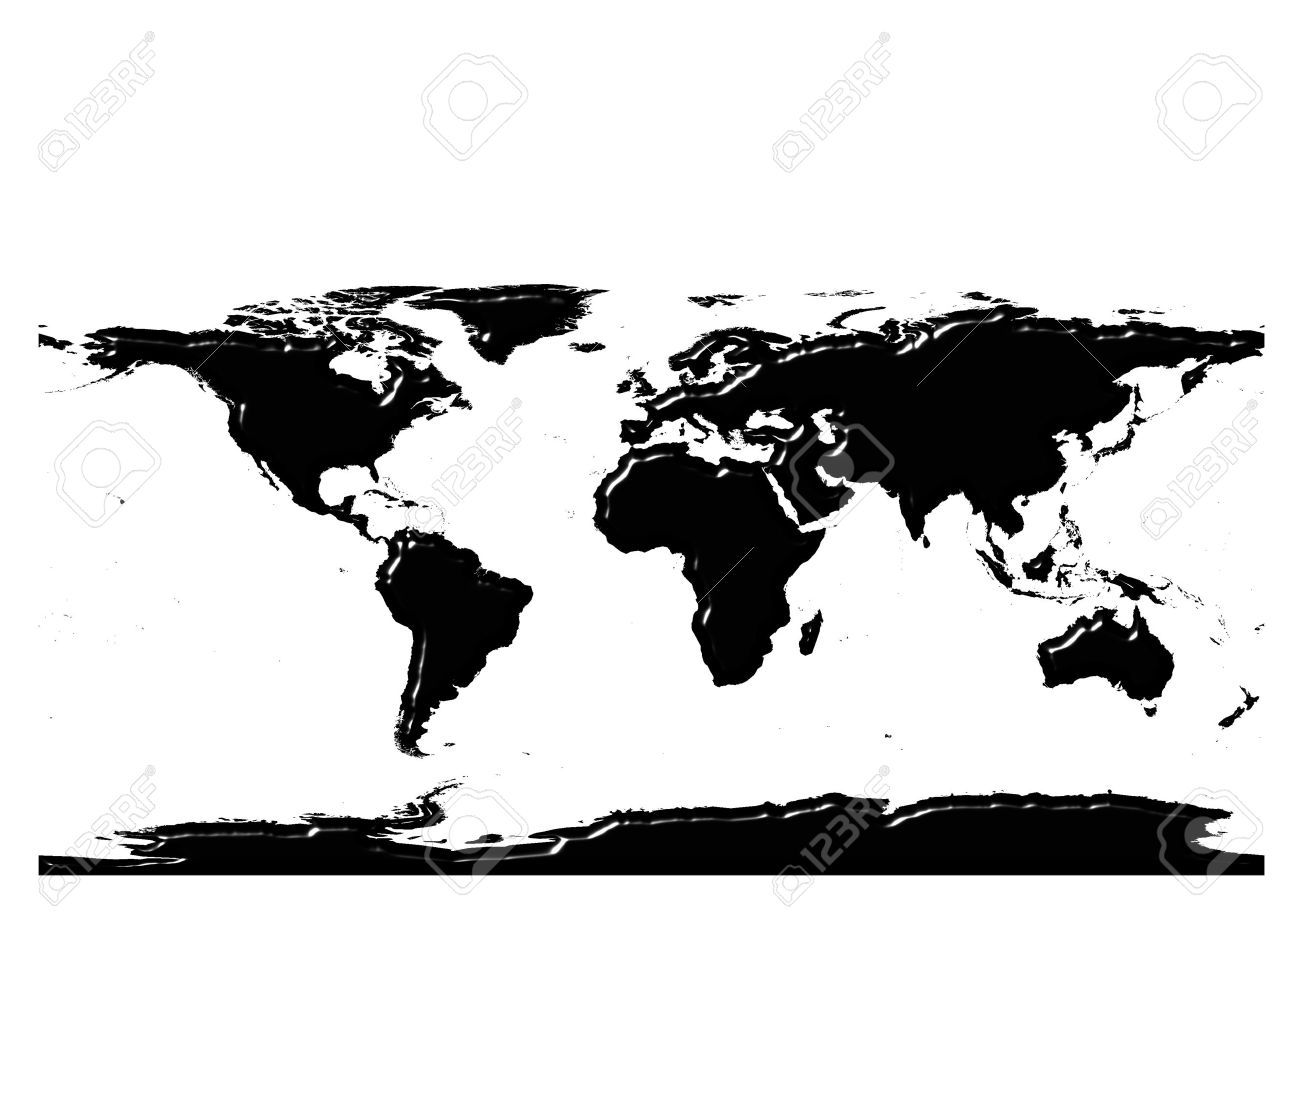 3d world map silhouette with reflection stock photo picture and 3d world map silhouette with reflection stock photo 4675833 gumiabroncs Images